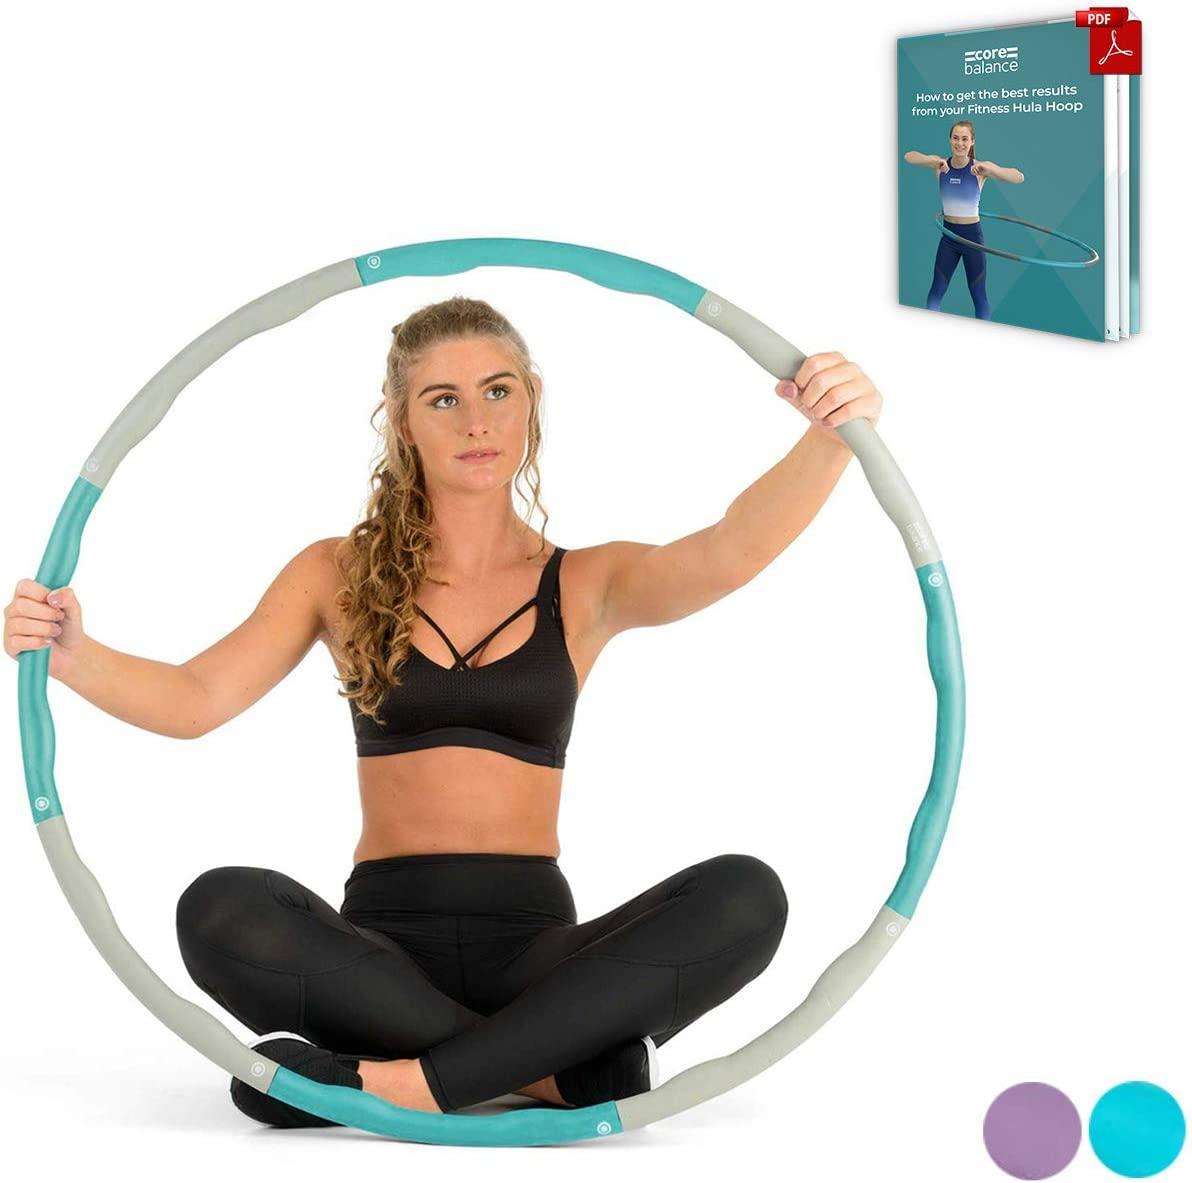 amazon co uk fitness hula hoops sports \u0026 outdoorsweighted hula hoop fitness abs exercise workout padded collapsible hoola 1 2kg